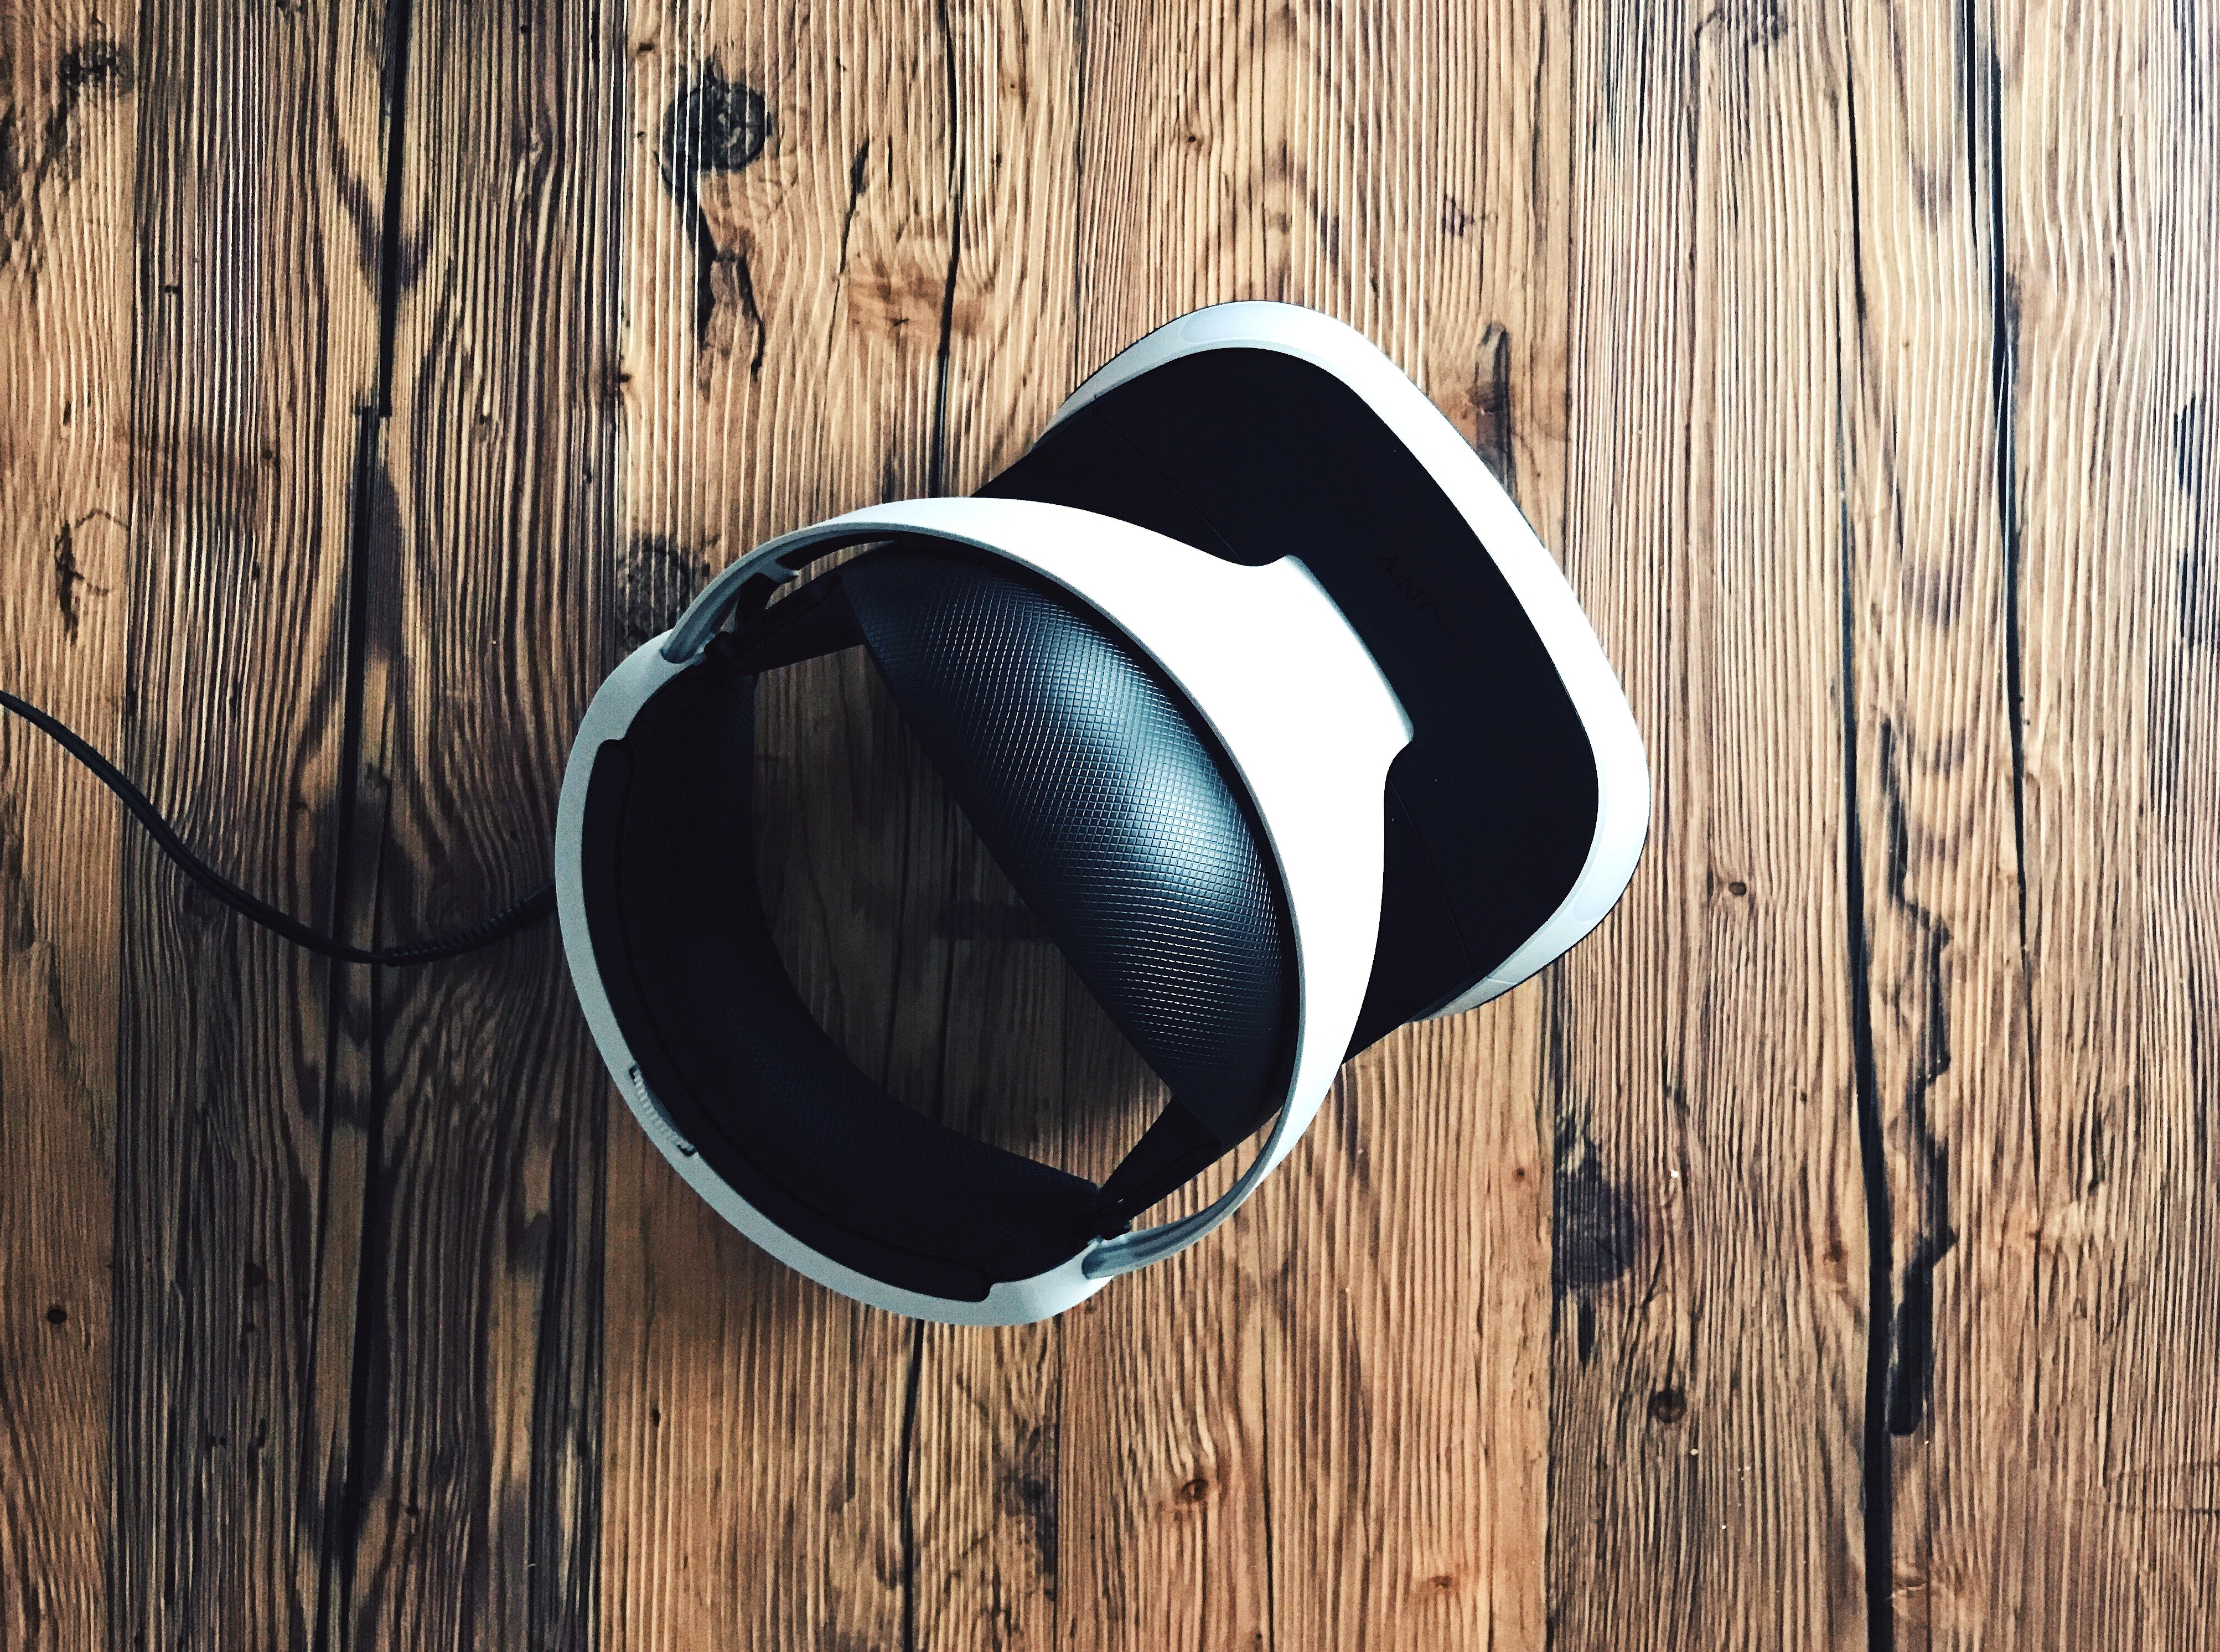 Post-pandemic Outlook for the Virtual Reality Industry